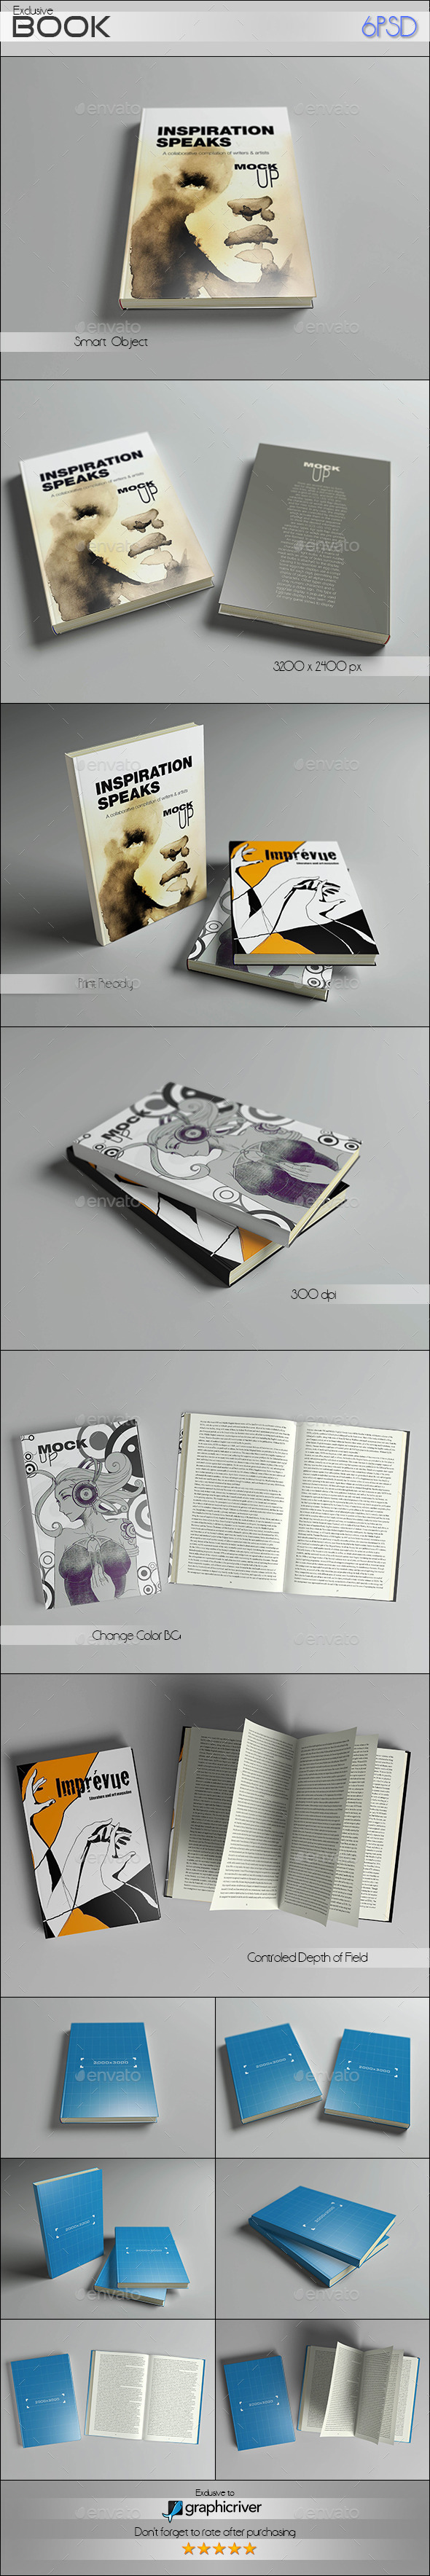 Book - Books Print